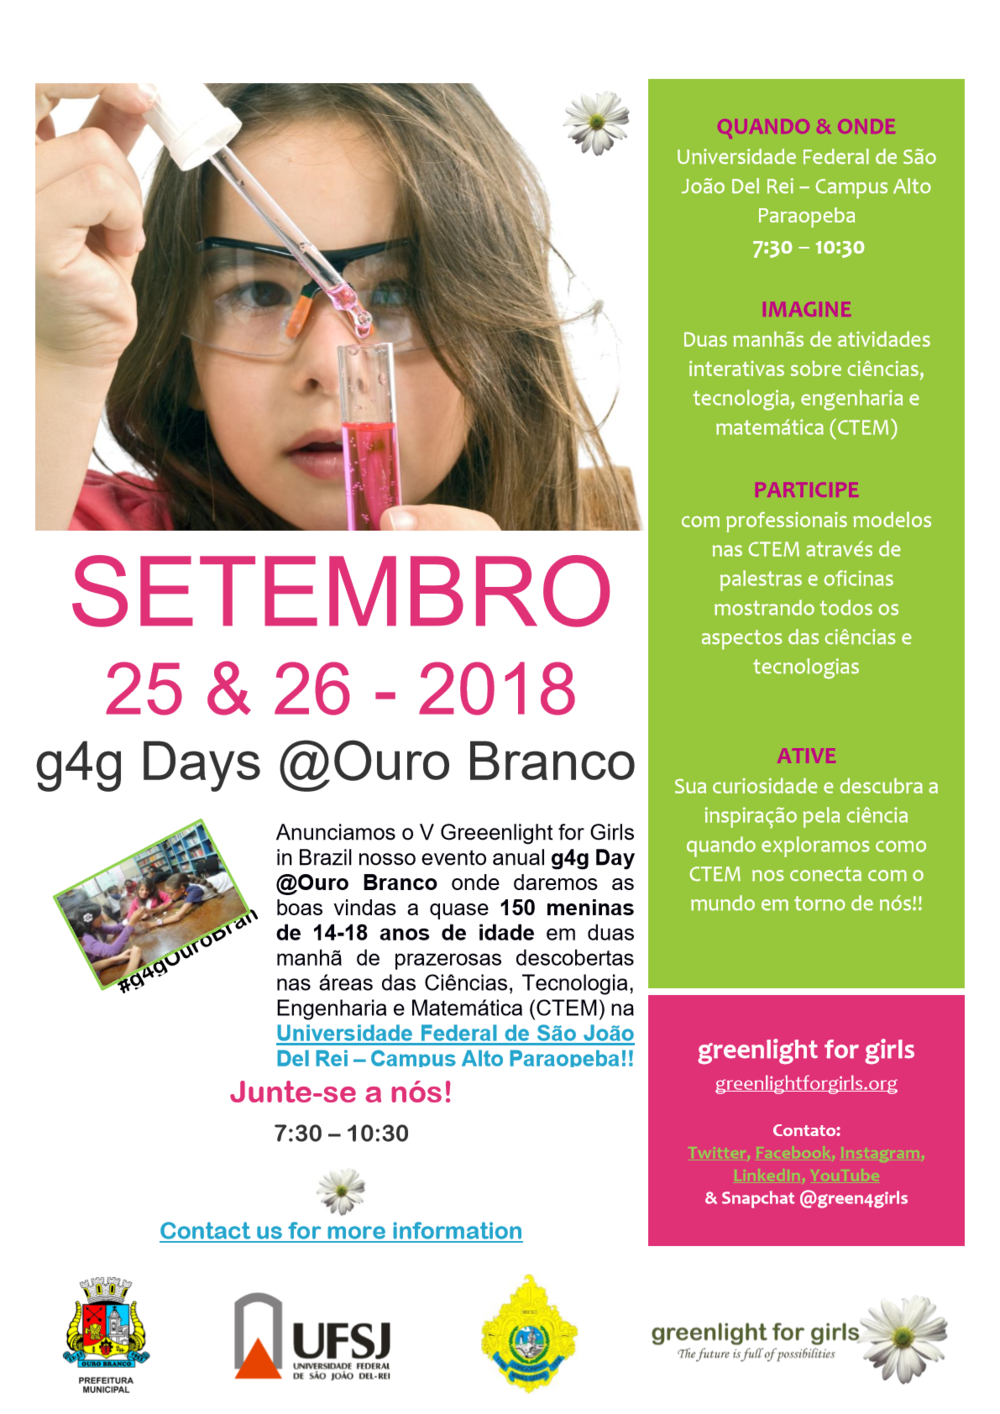 2018_g4g Day Ouro Branco_INFO FLYER_portuguese.jpg